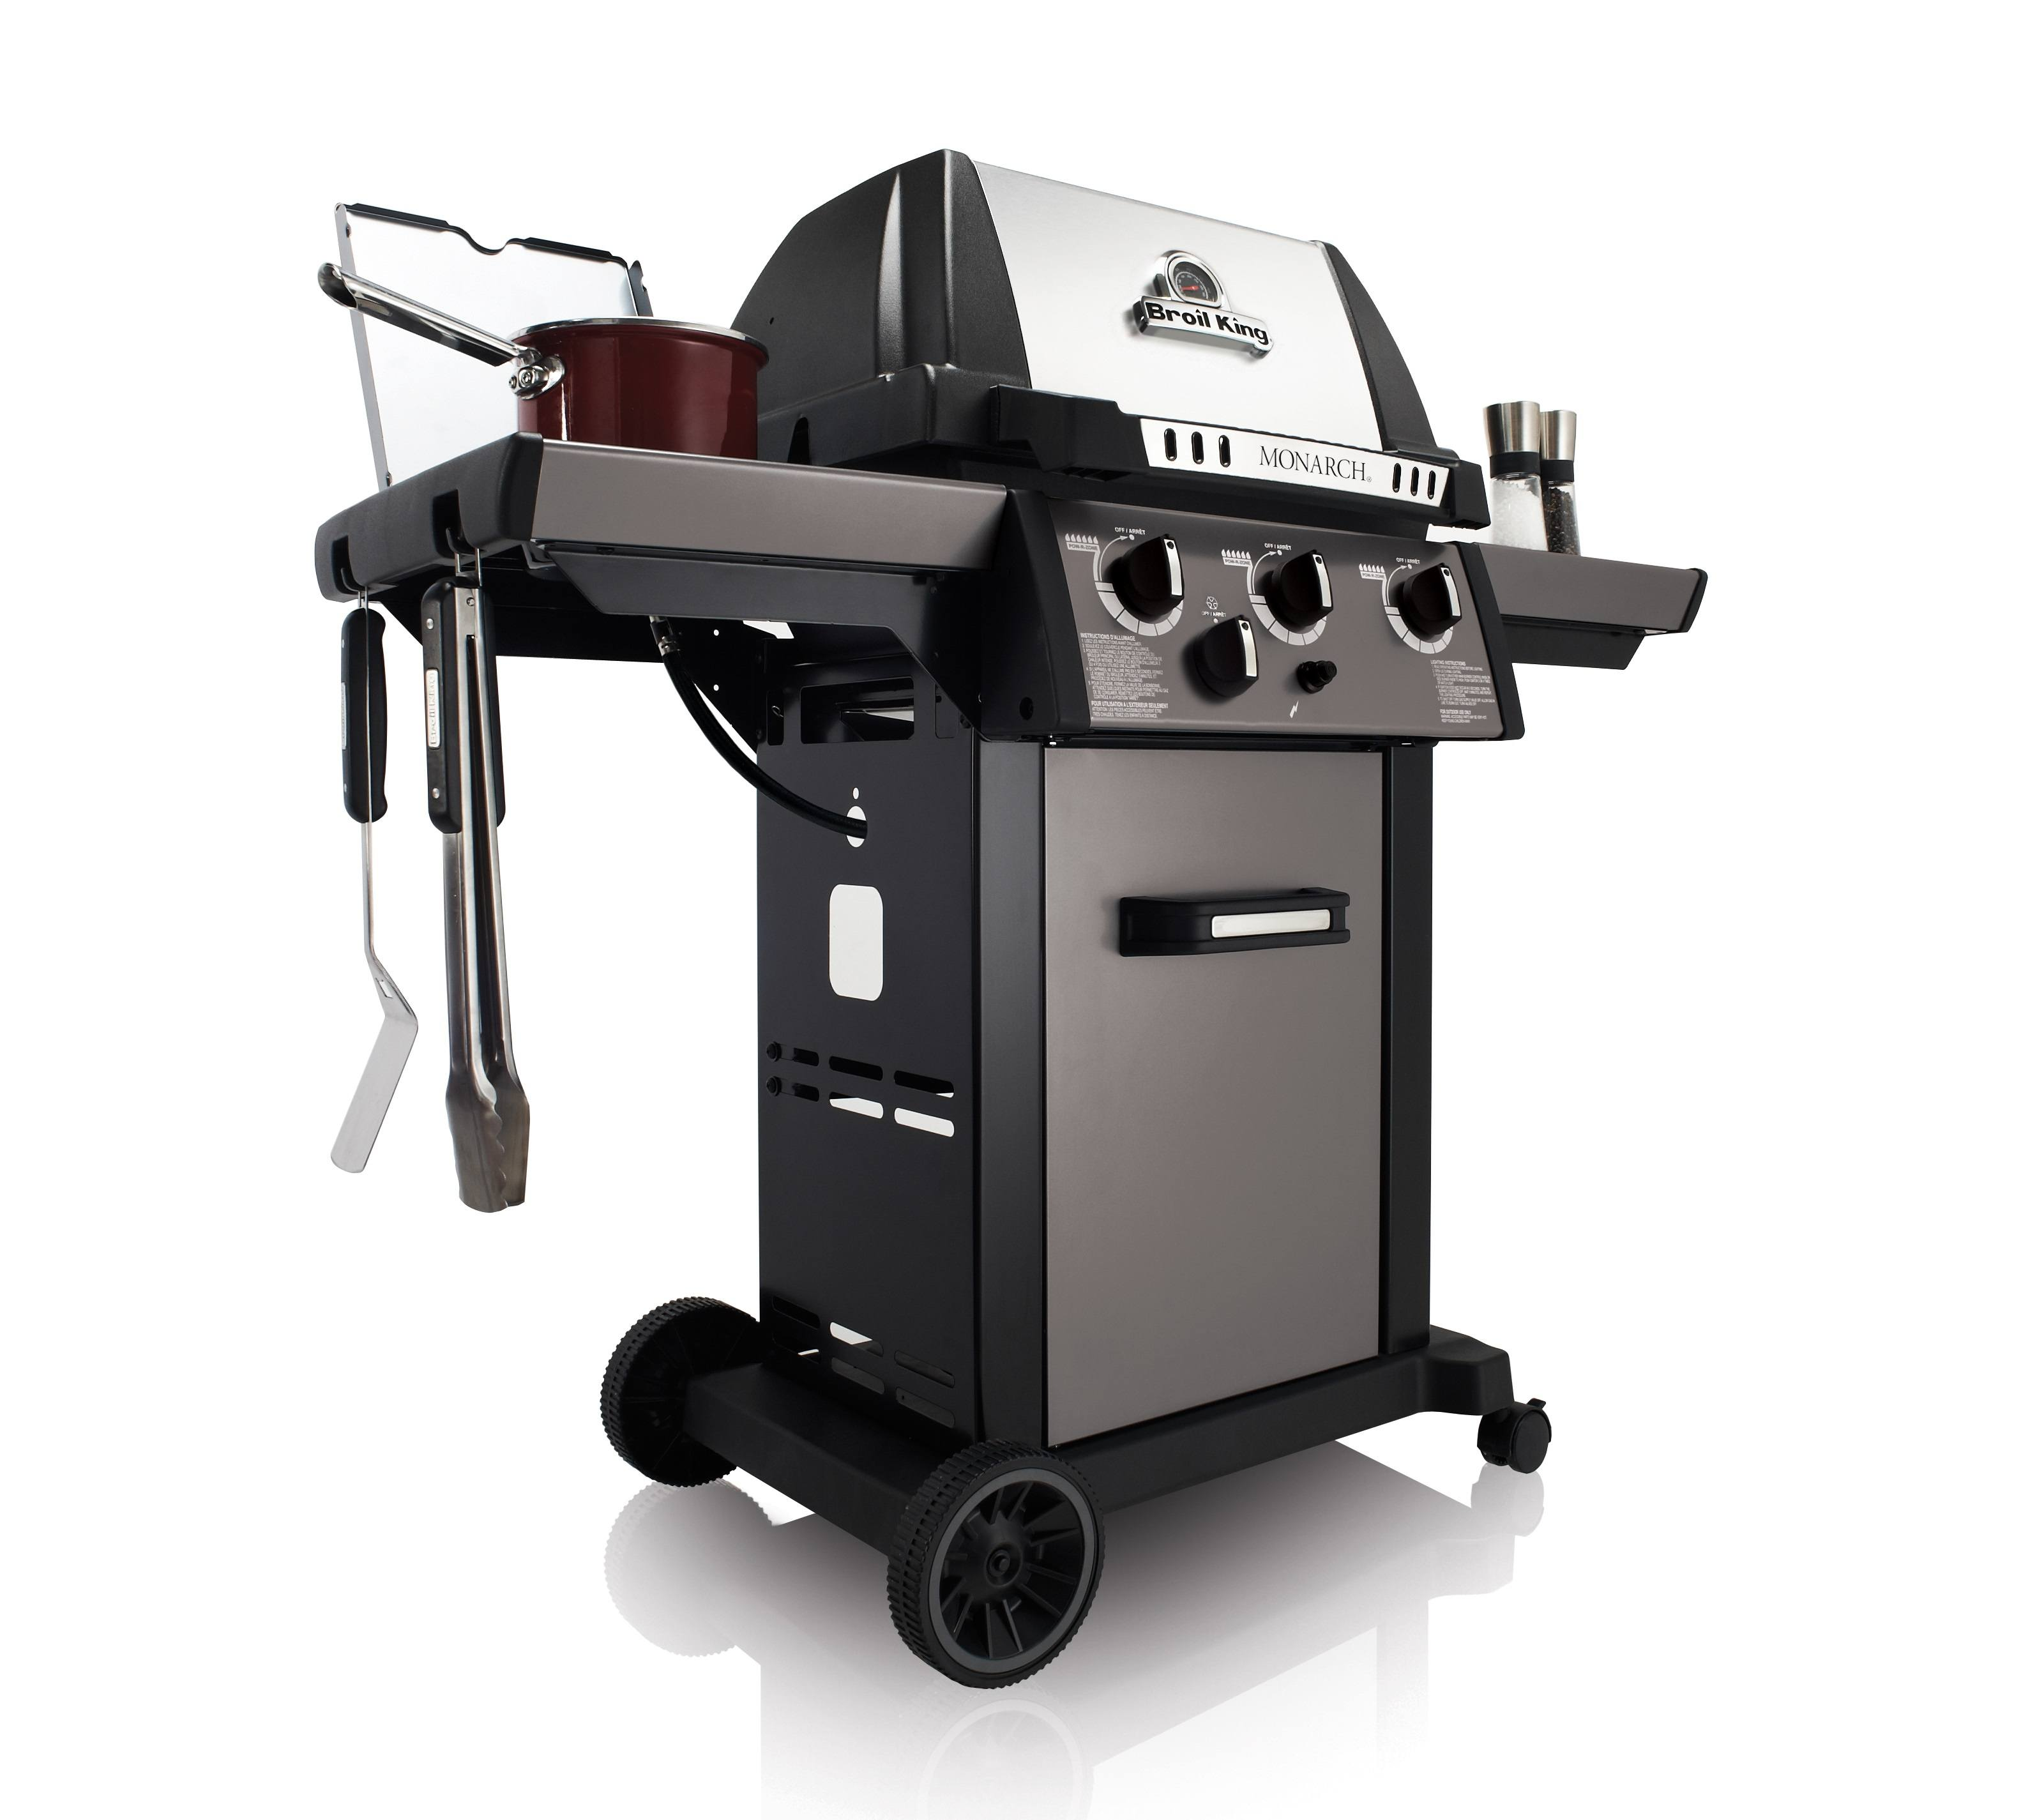 grill-broil-king Monarch 340